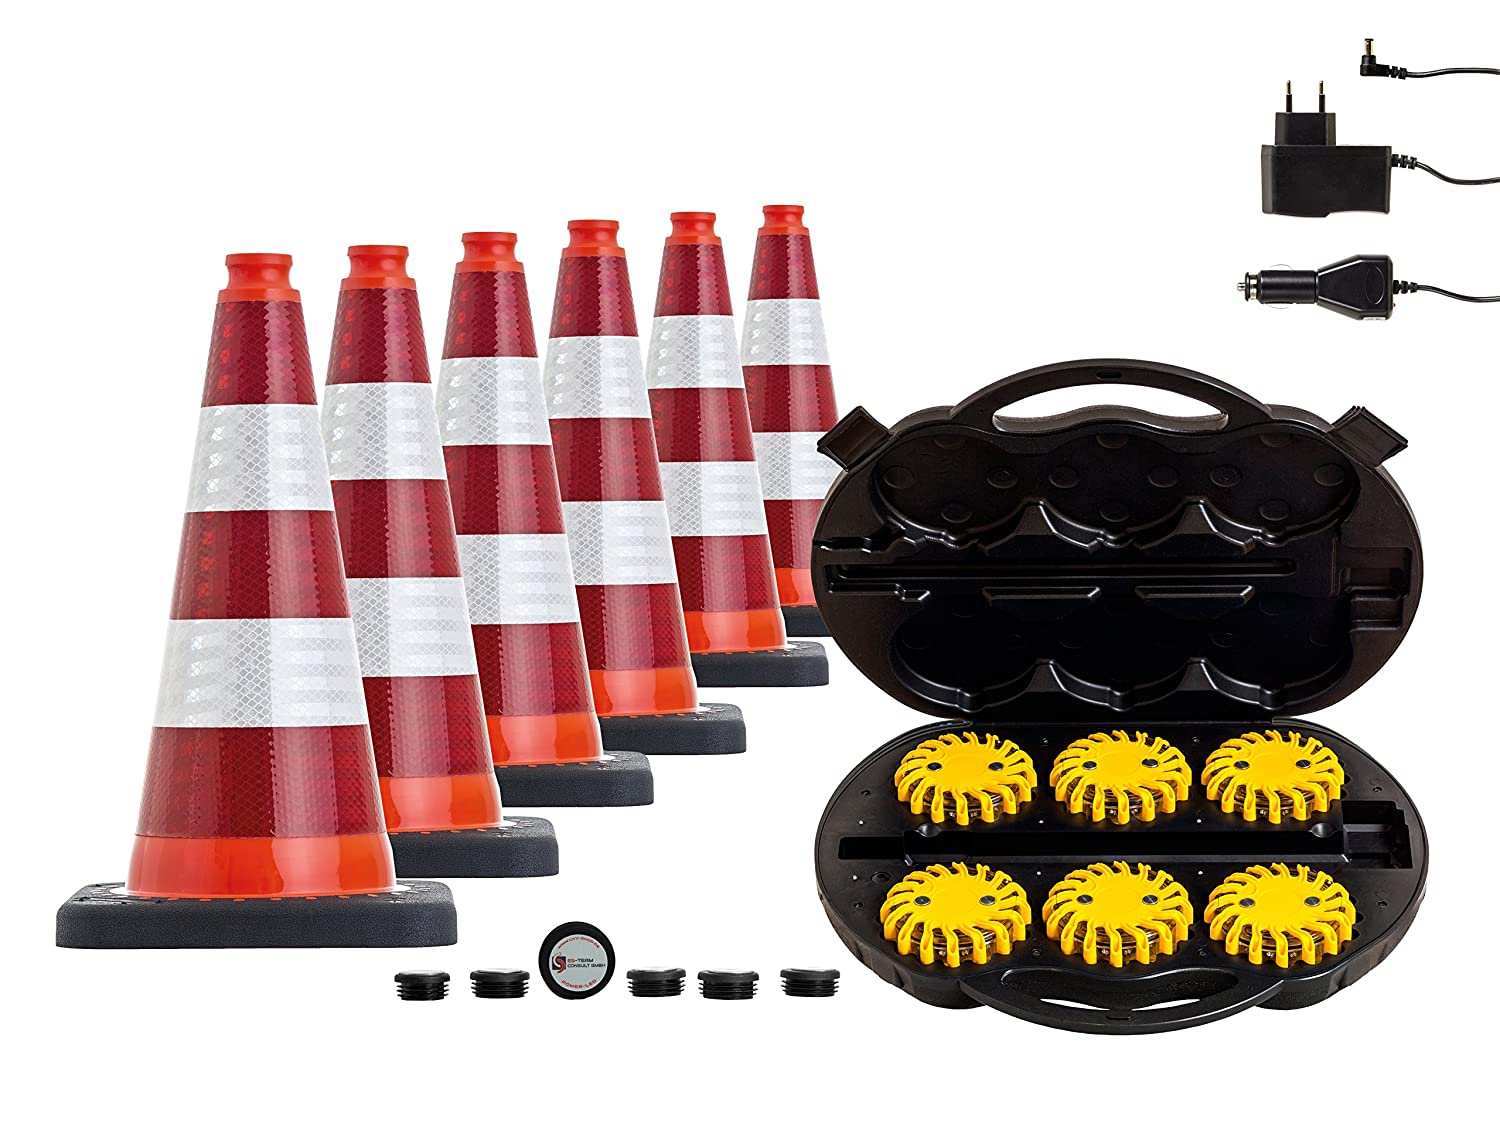 Set of 6 traffic cone with high power led warning lights mobileds set of 6 traffic cone with high power led warning lights mobileds escape light flare in practical travel battery charger power case full 3pack biocorpaavc